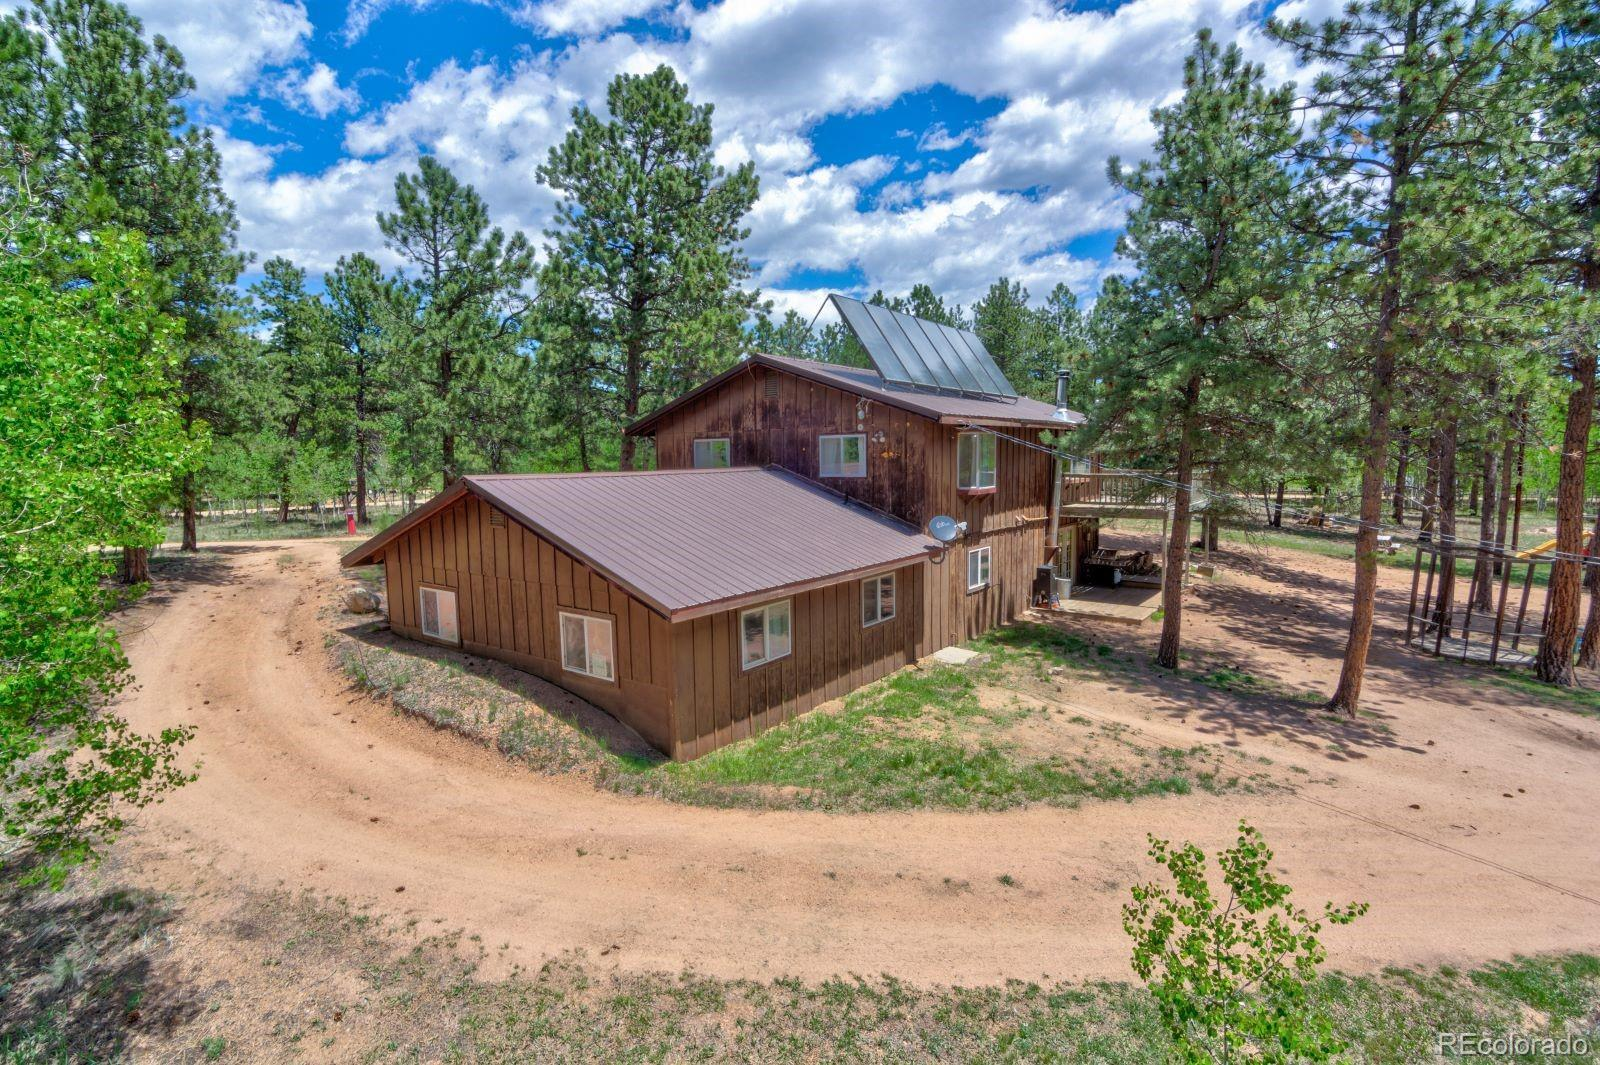 MLS# 7974554 - 2 - 810 Tincup Terrace, Bailey, CO 80421